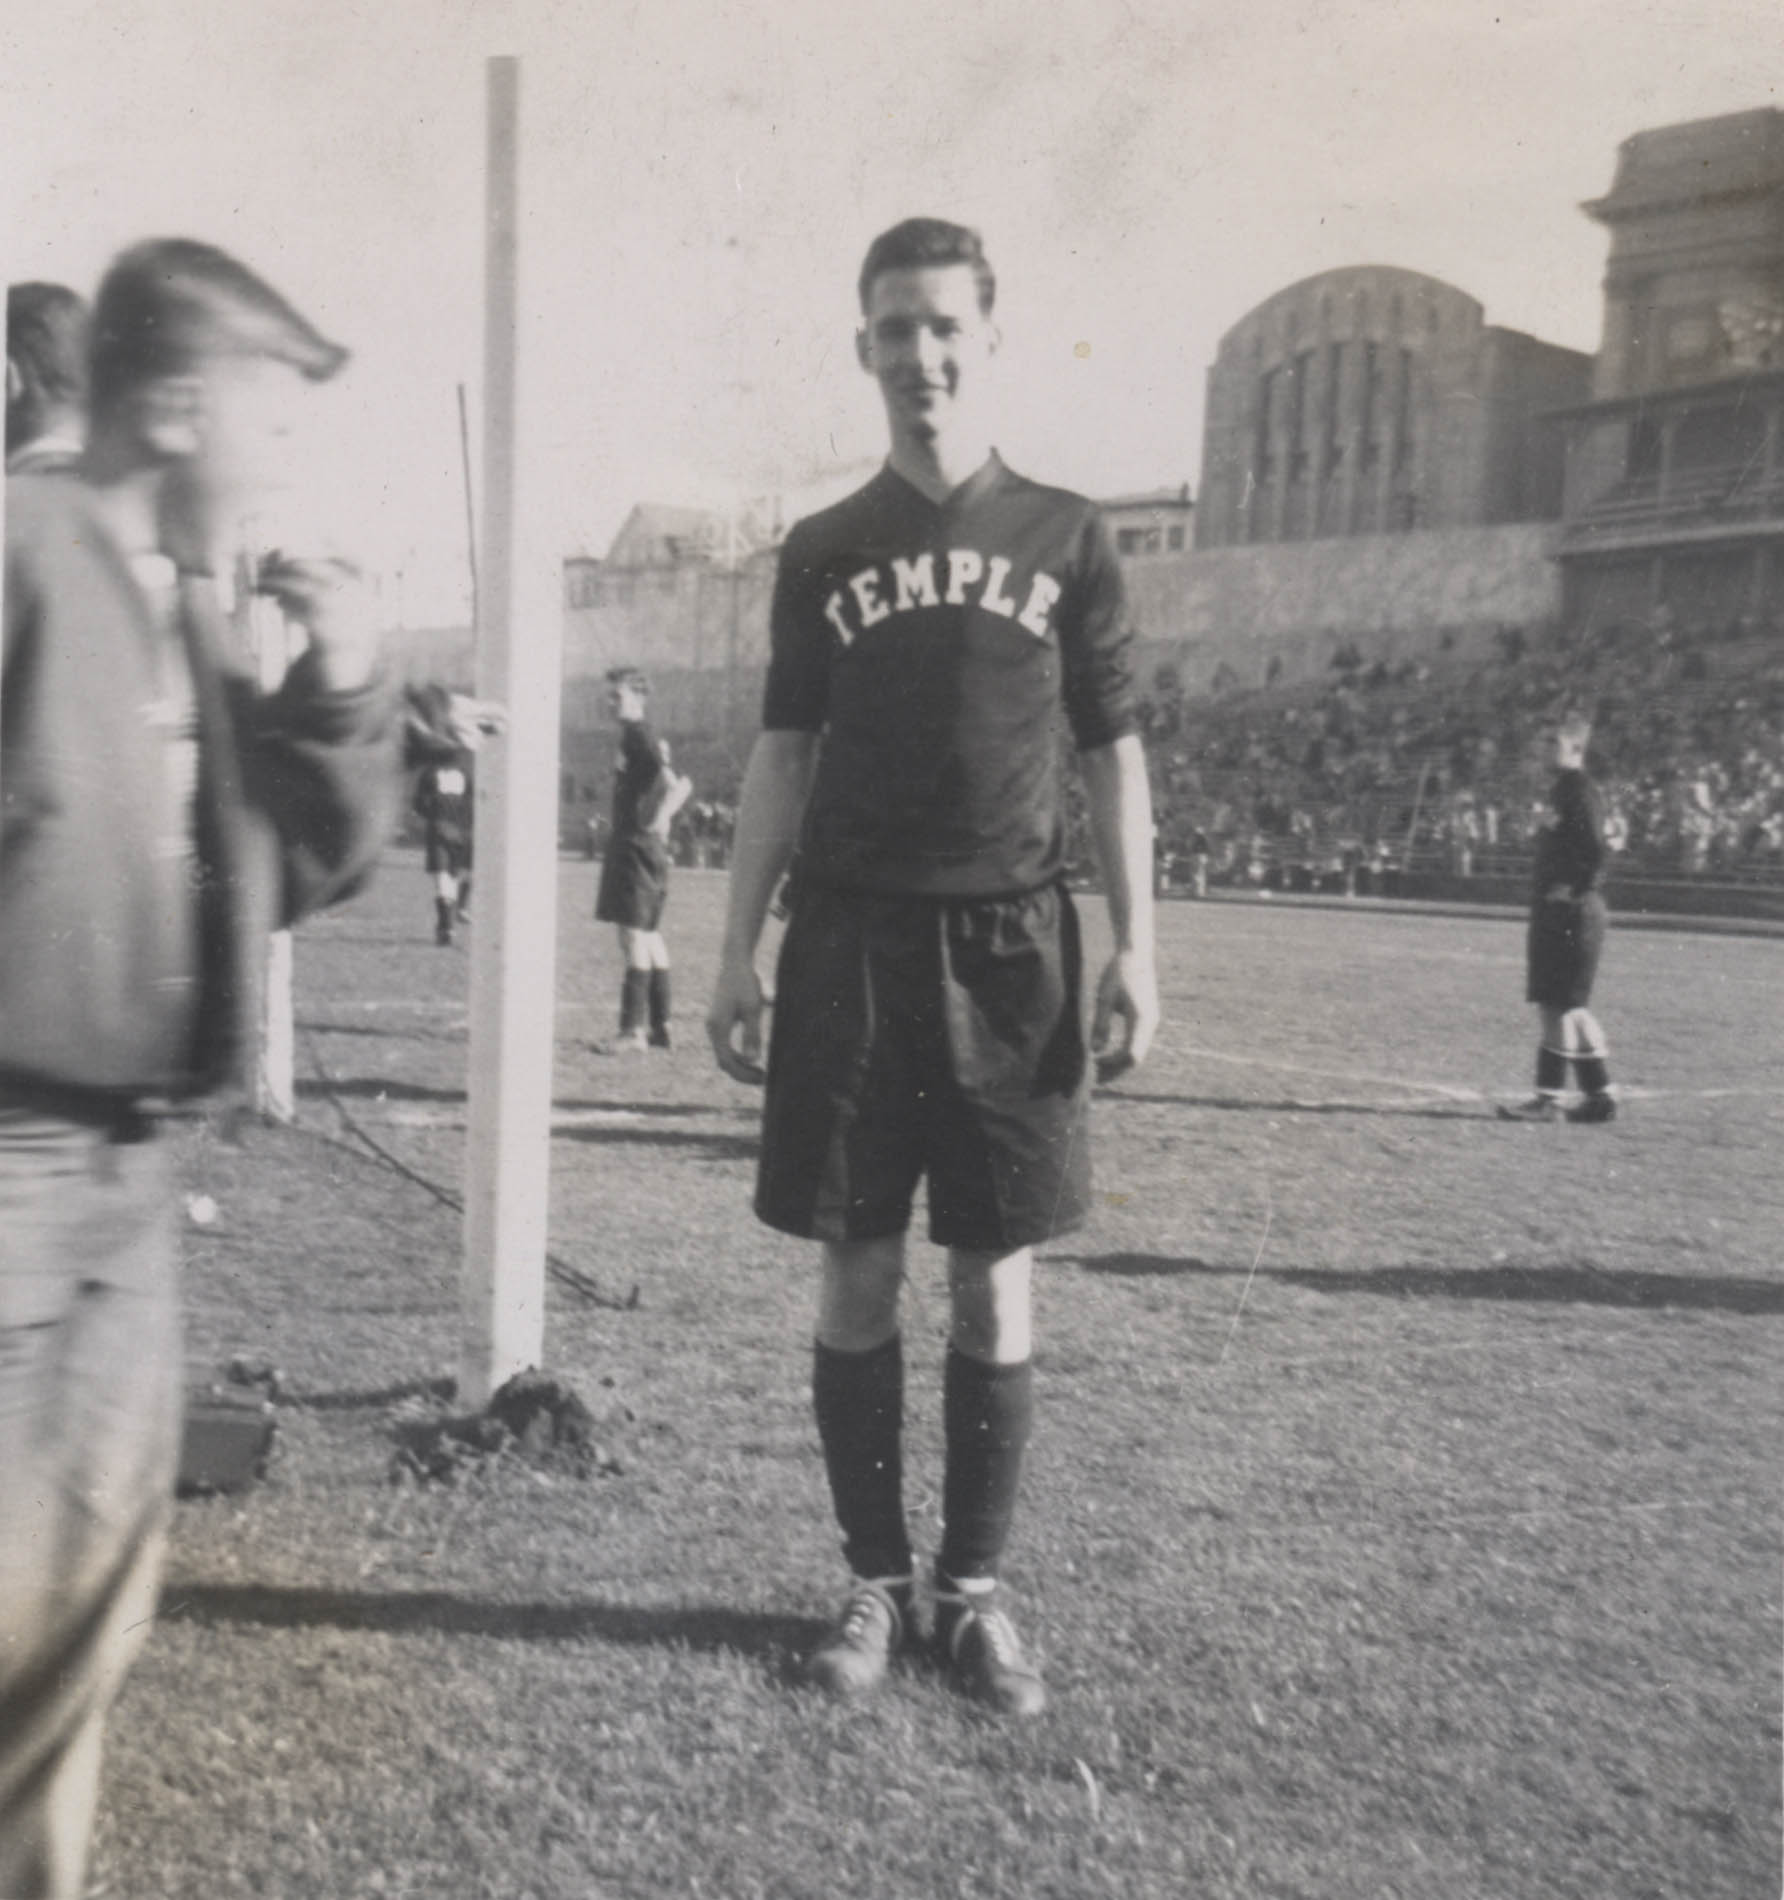 Oliver at the 1951 College Bowl in San Francisco. Photo courtesy of Len Oliver.